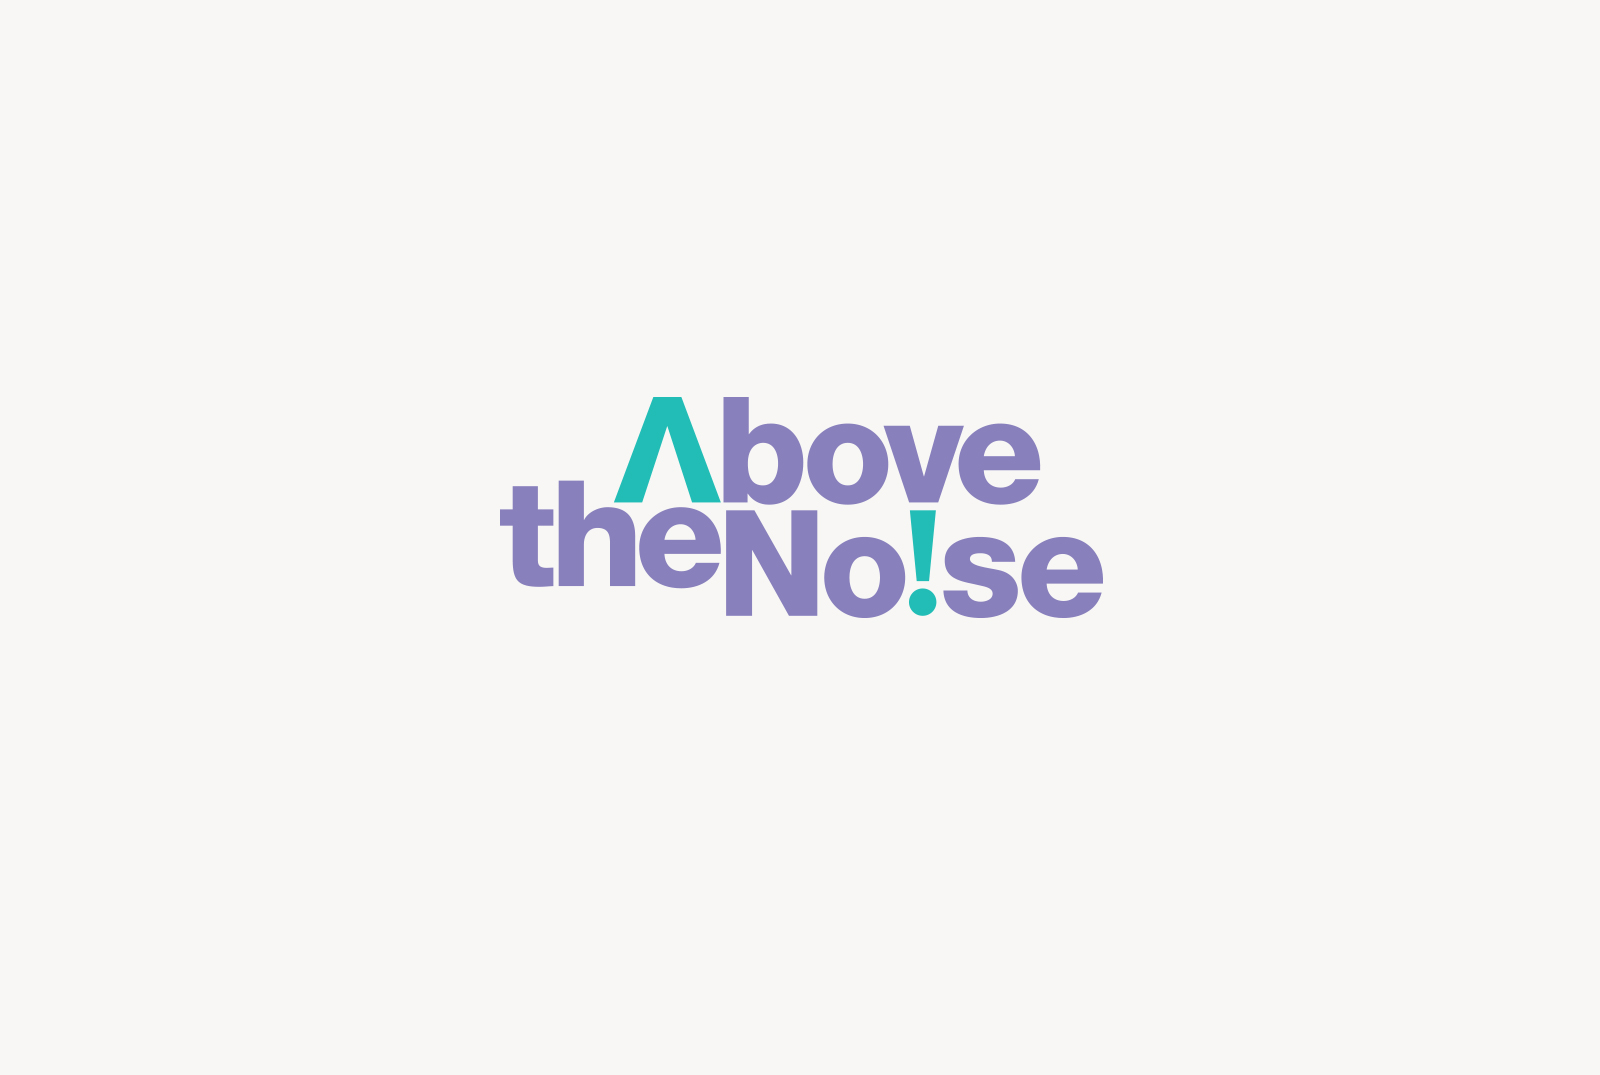 Above The Noise / Nychuk Design (5)